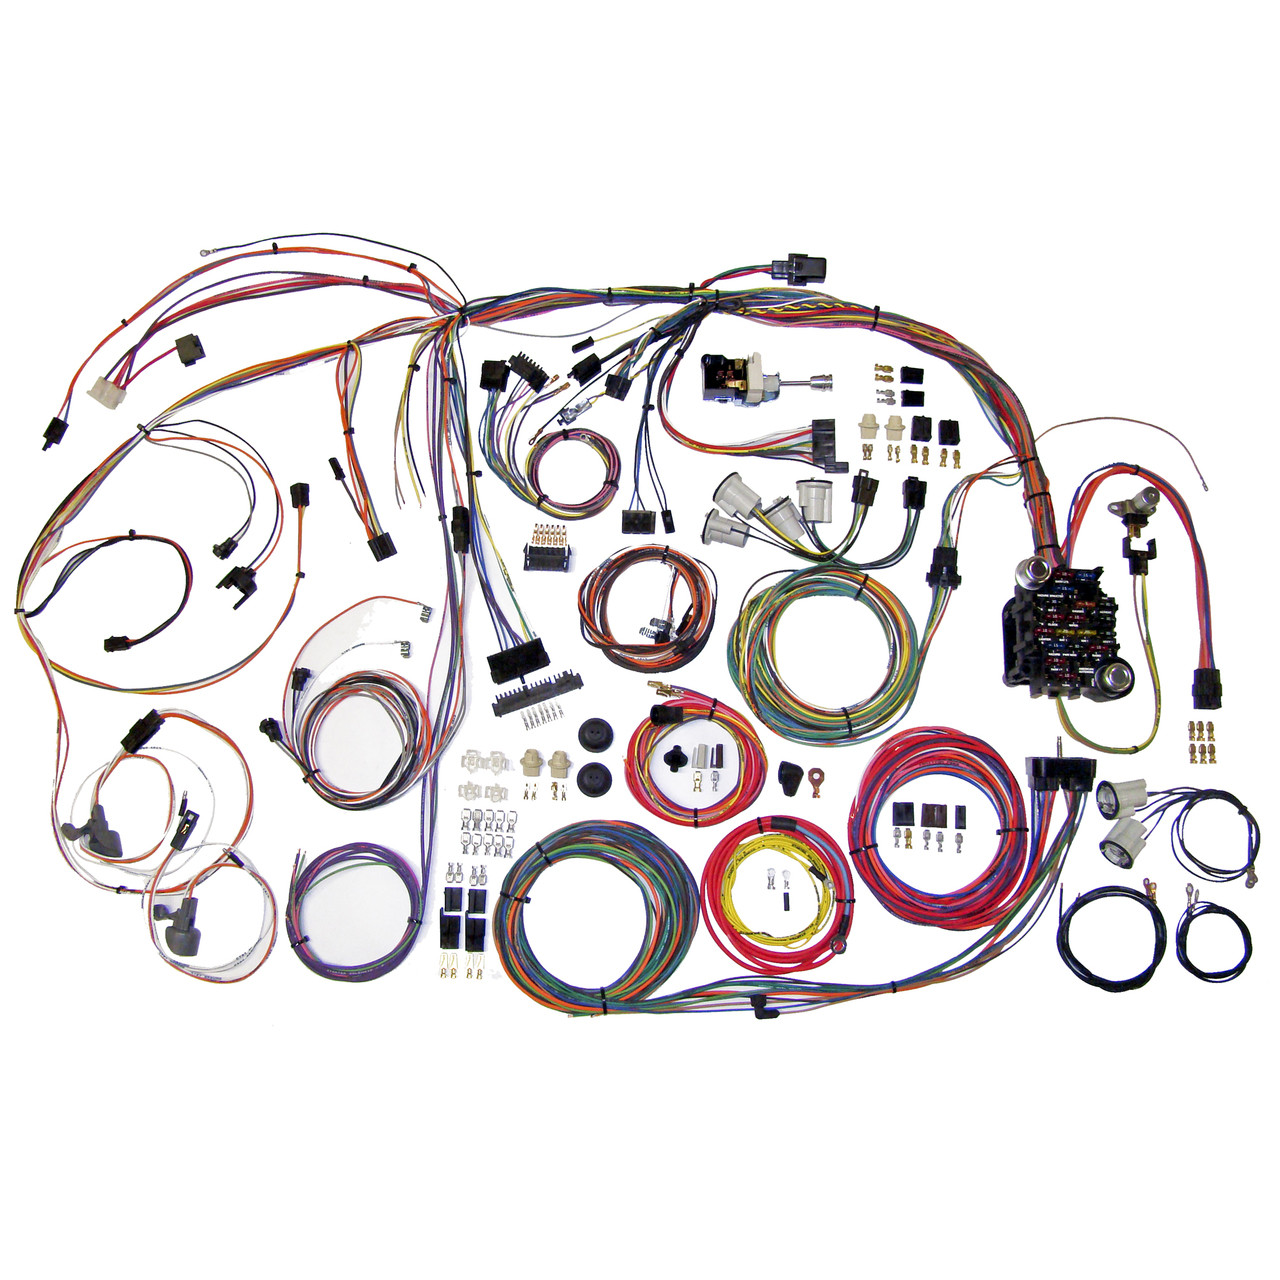 hight resolution of american autowire 1970 1972 chevrolet chevelle el camino classic 19701972 chevelle complete wiring harness kit 19701972 chevelle